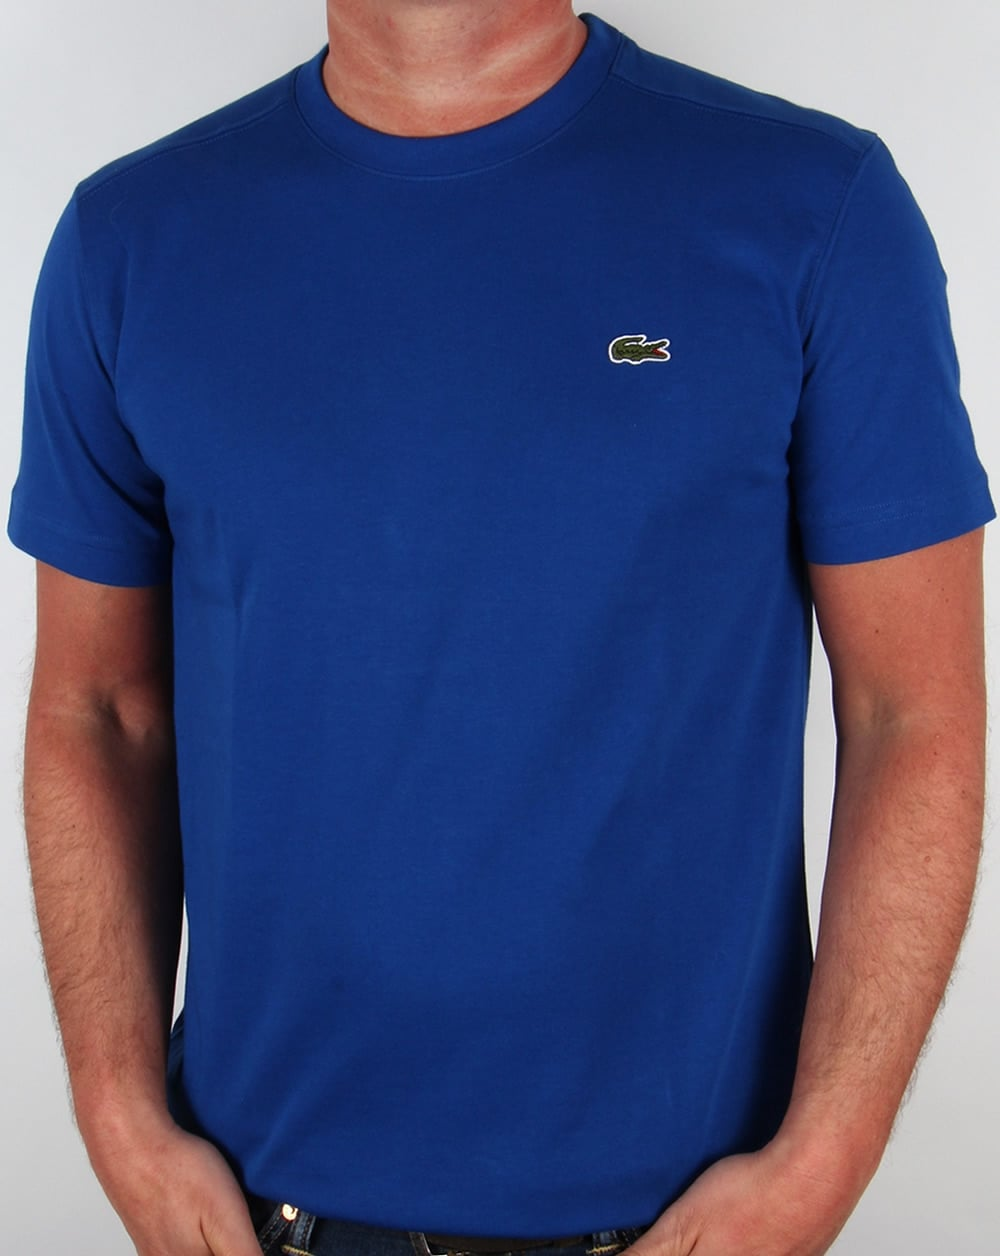 lacoste t shirt royal blue tee crew neck sport mens